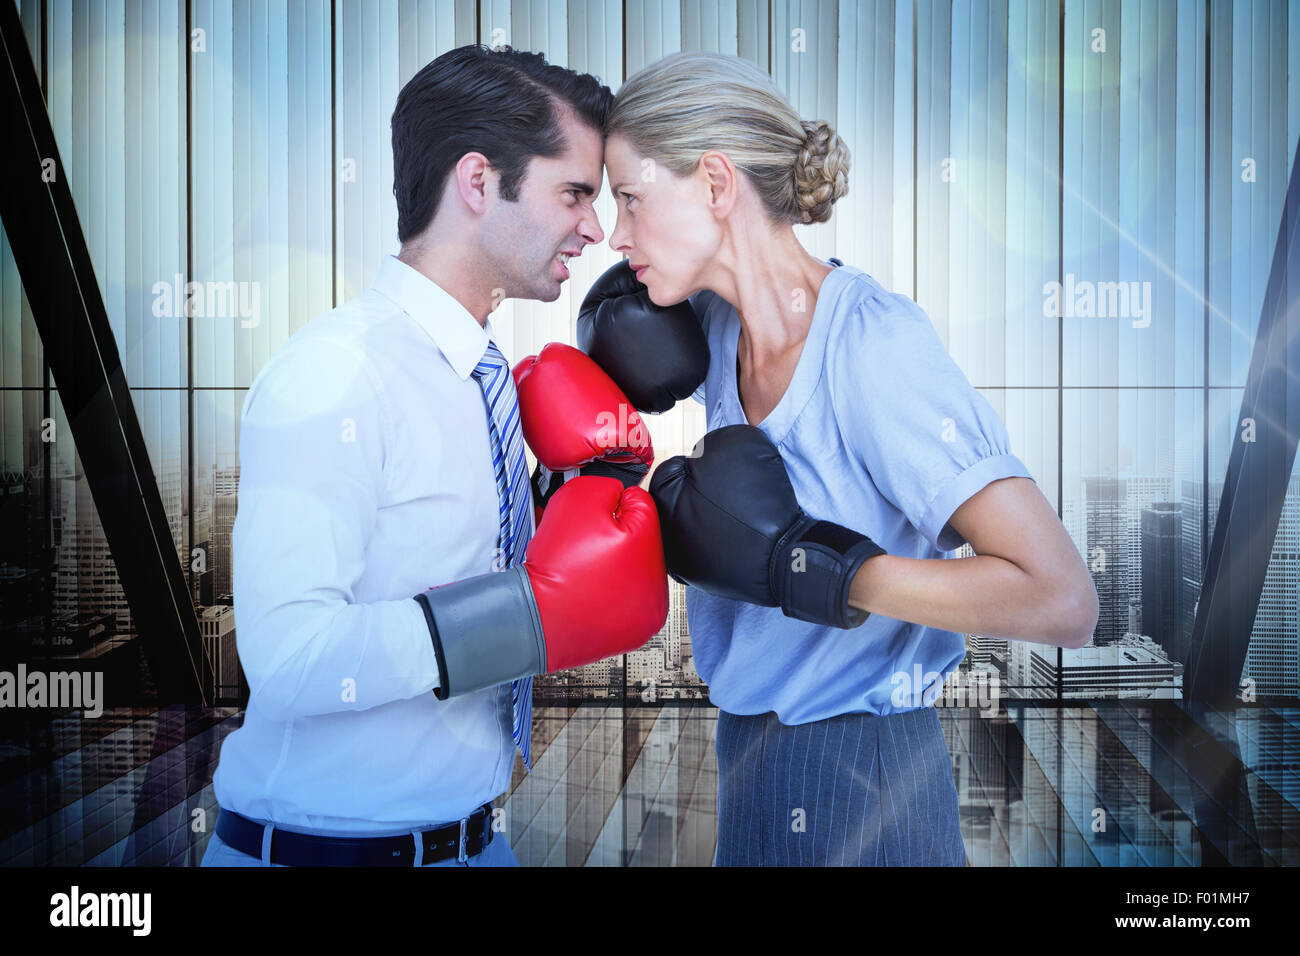 Composite image of business people wearing and boxing red gloves - Stock Image